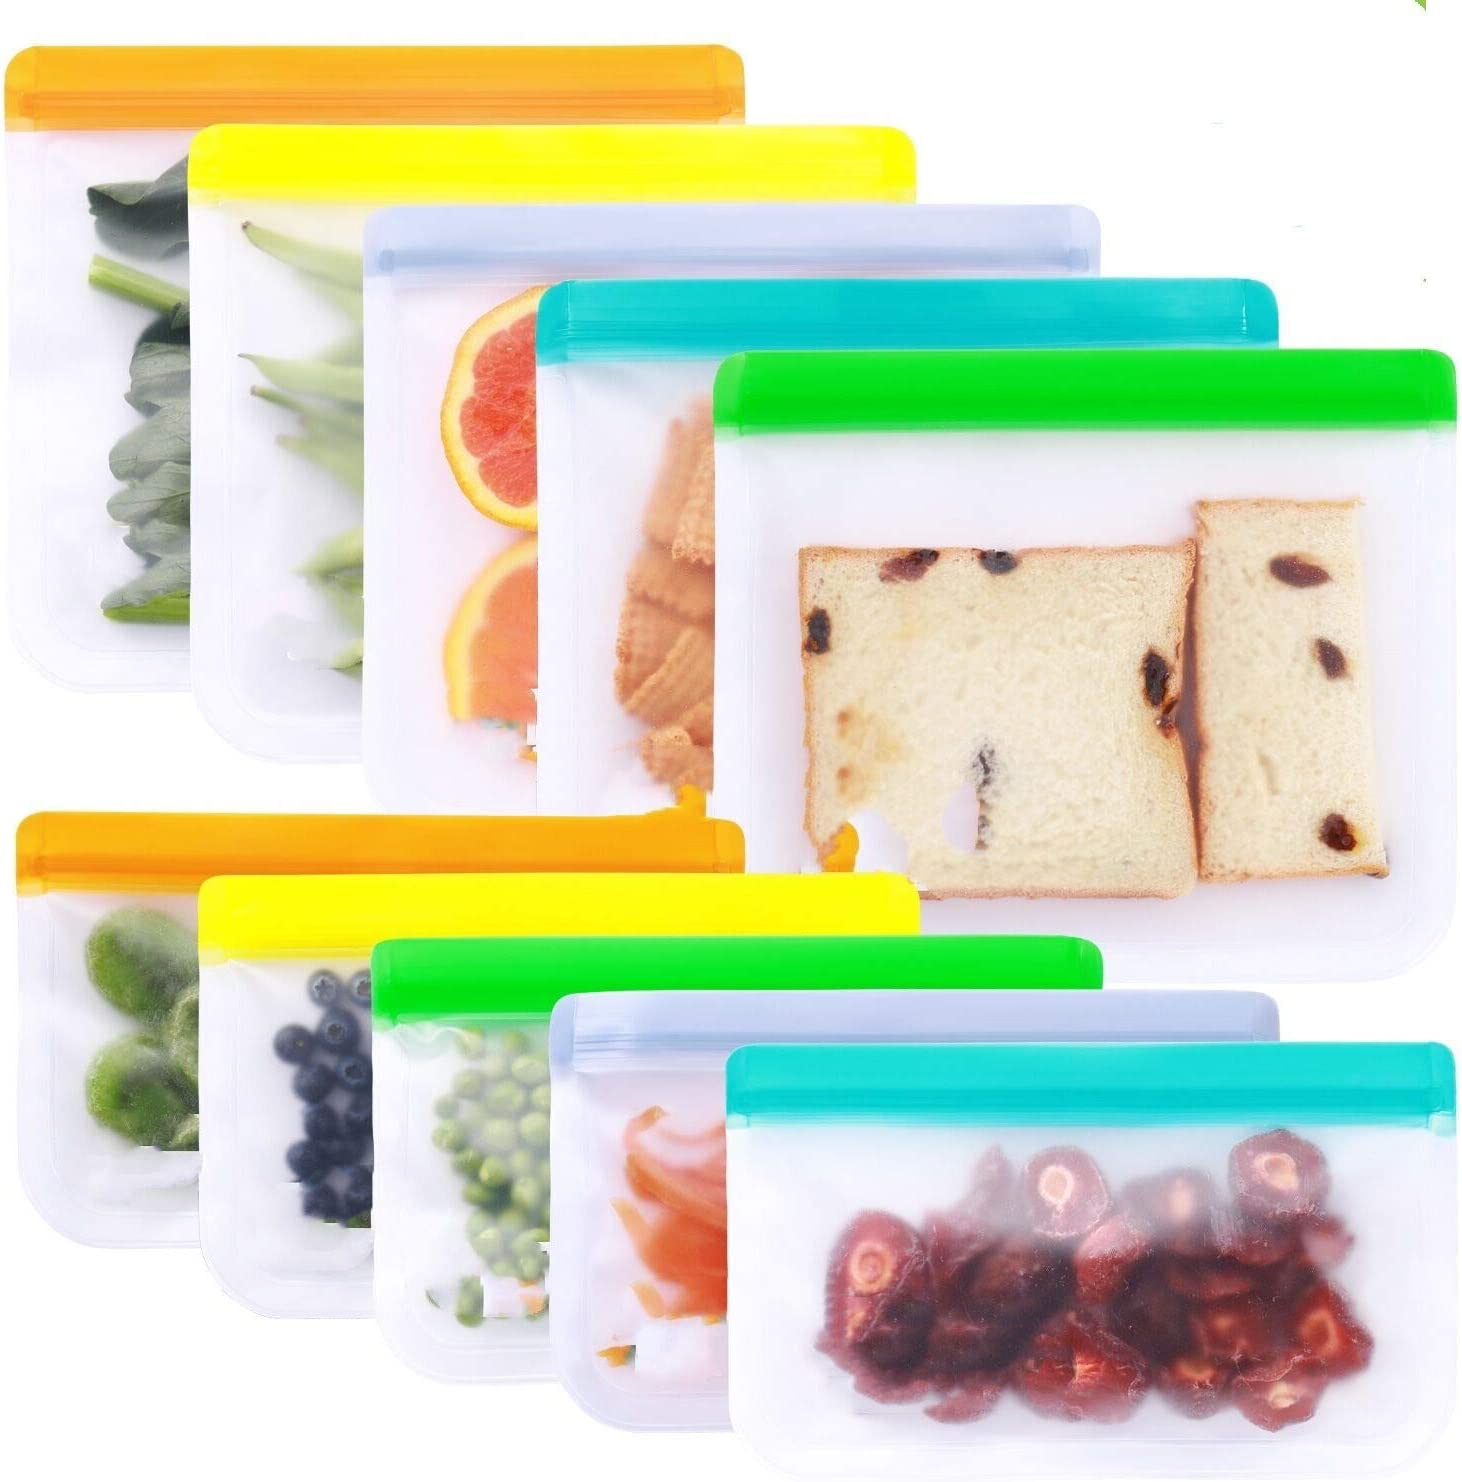 Reusable Storage Bags - 10 Pack BPA FREE Freezer Bags(5 Reusable Sandwich Bags + 5 Reusable Snack Bags) Leakproof Lunch Reusable Bags for Home Kitchen Travel Organization Food Marinate Fruit Cereal